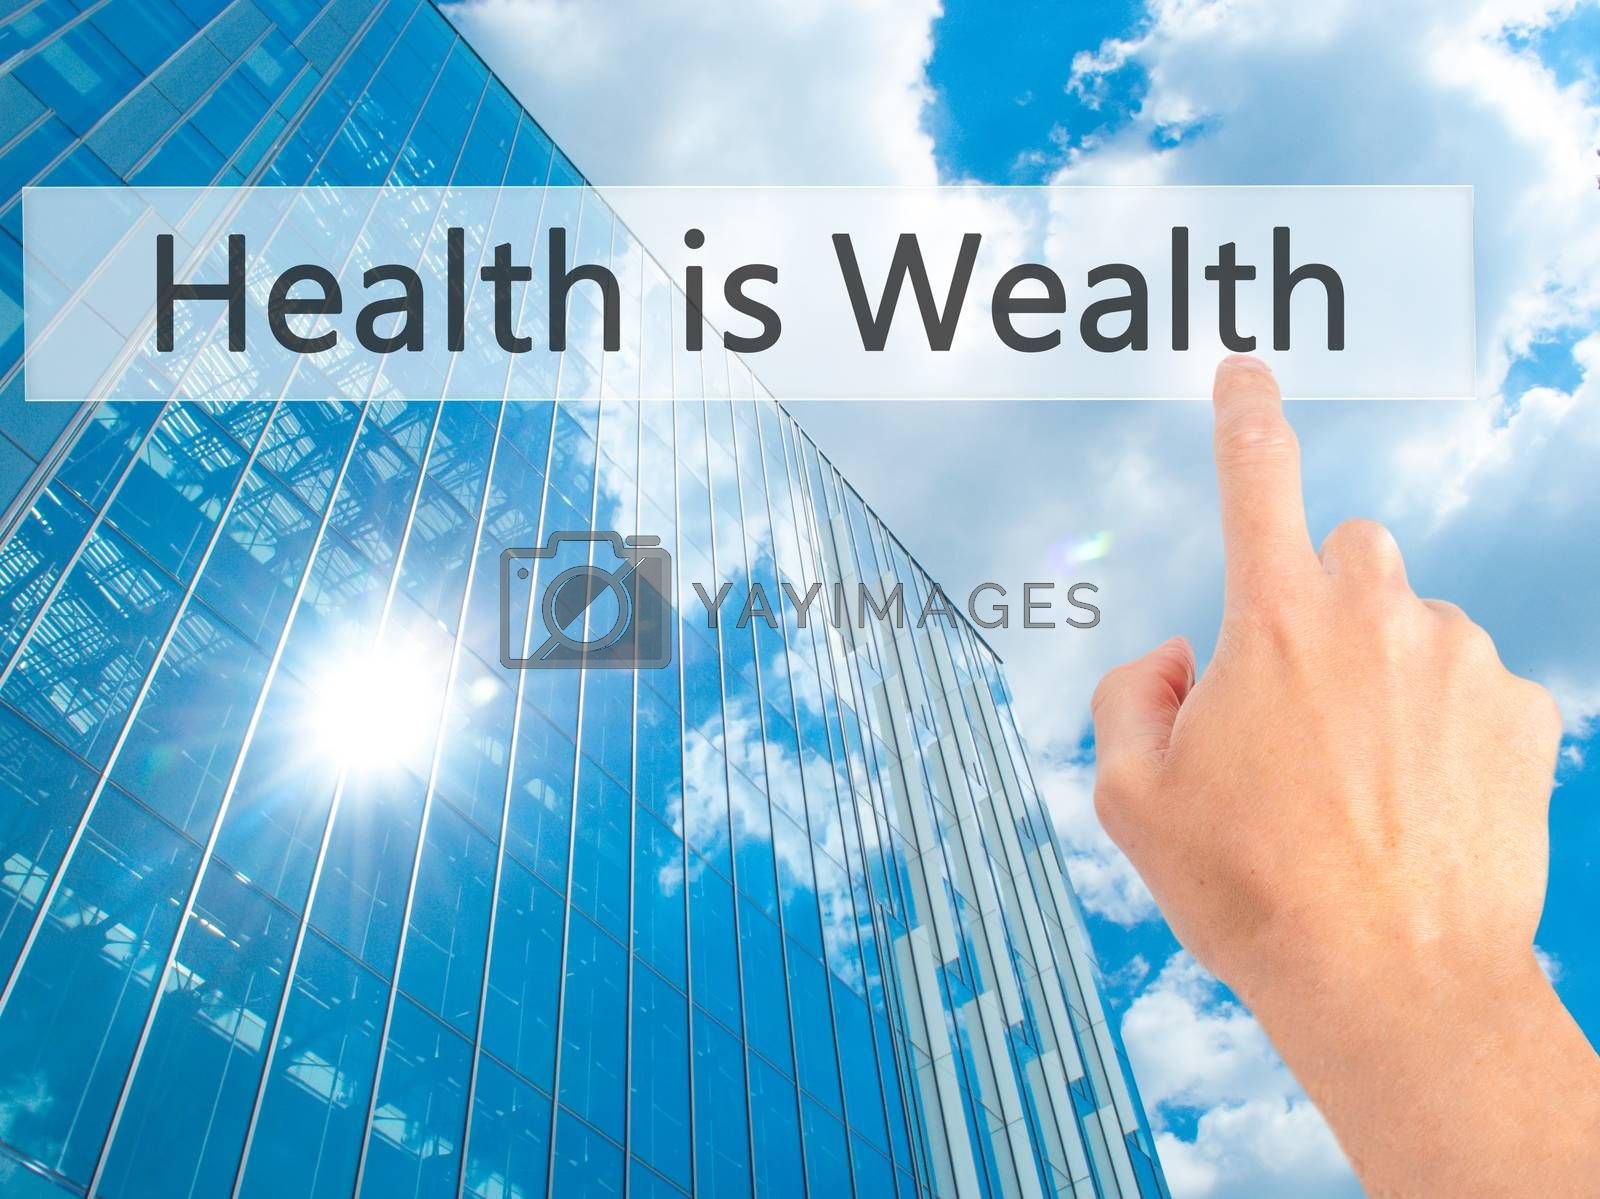 Health is Wealth - Hand pressing a button on blurred background  by jackald